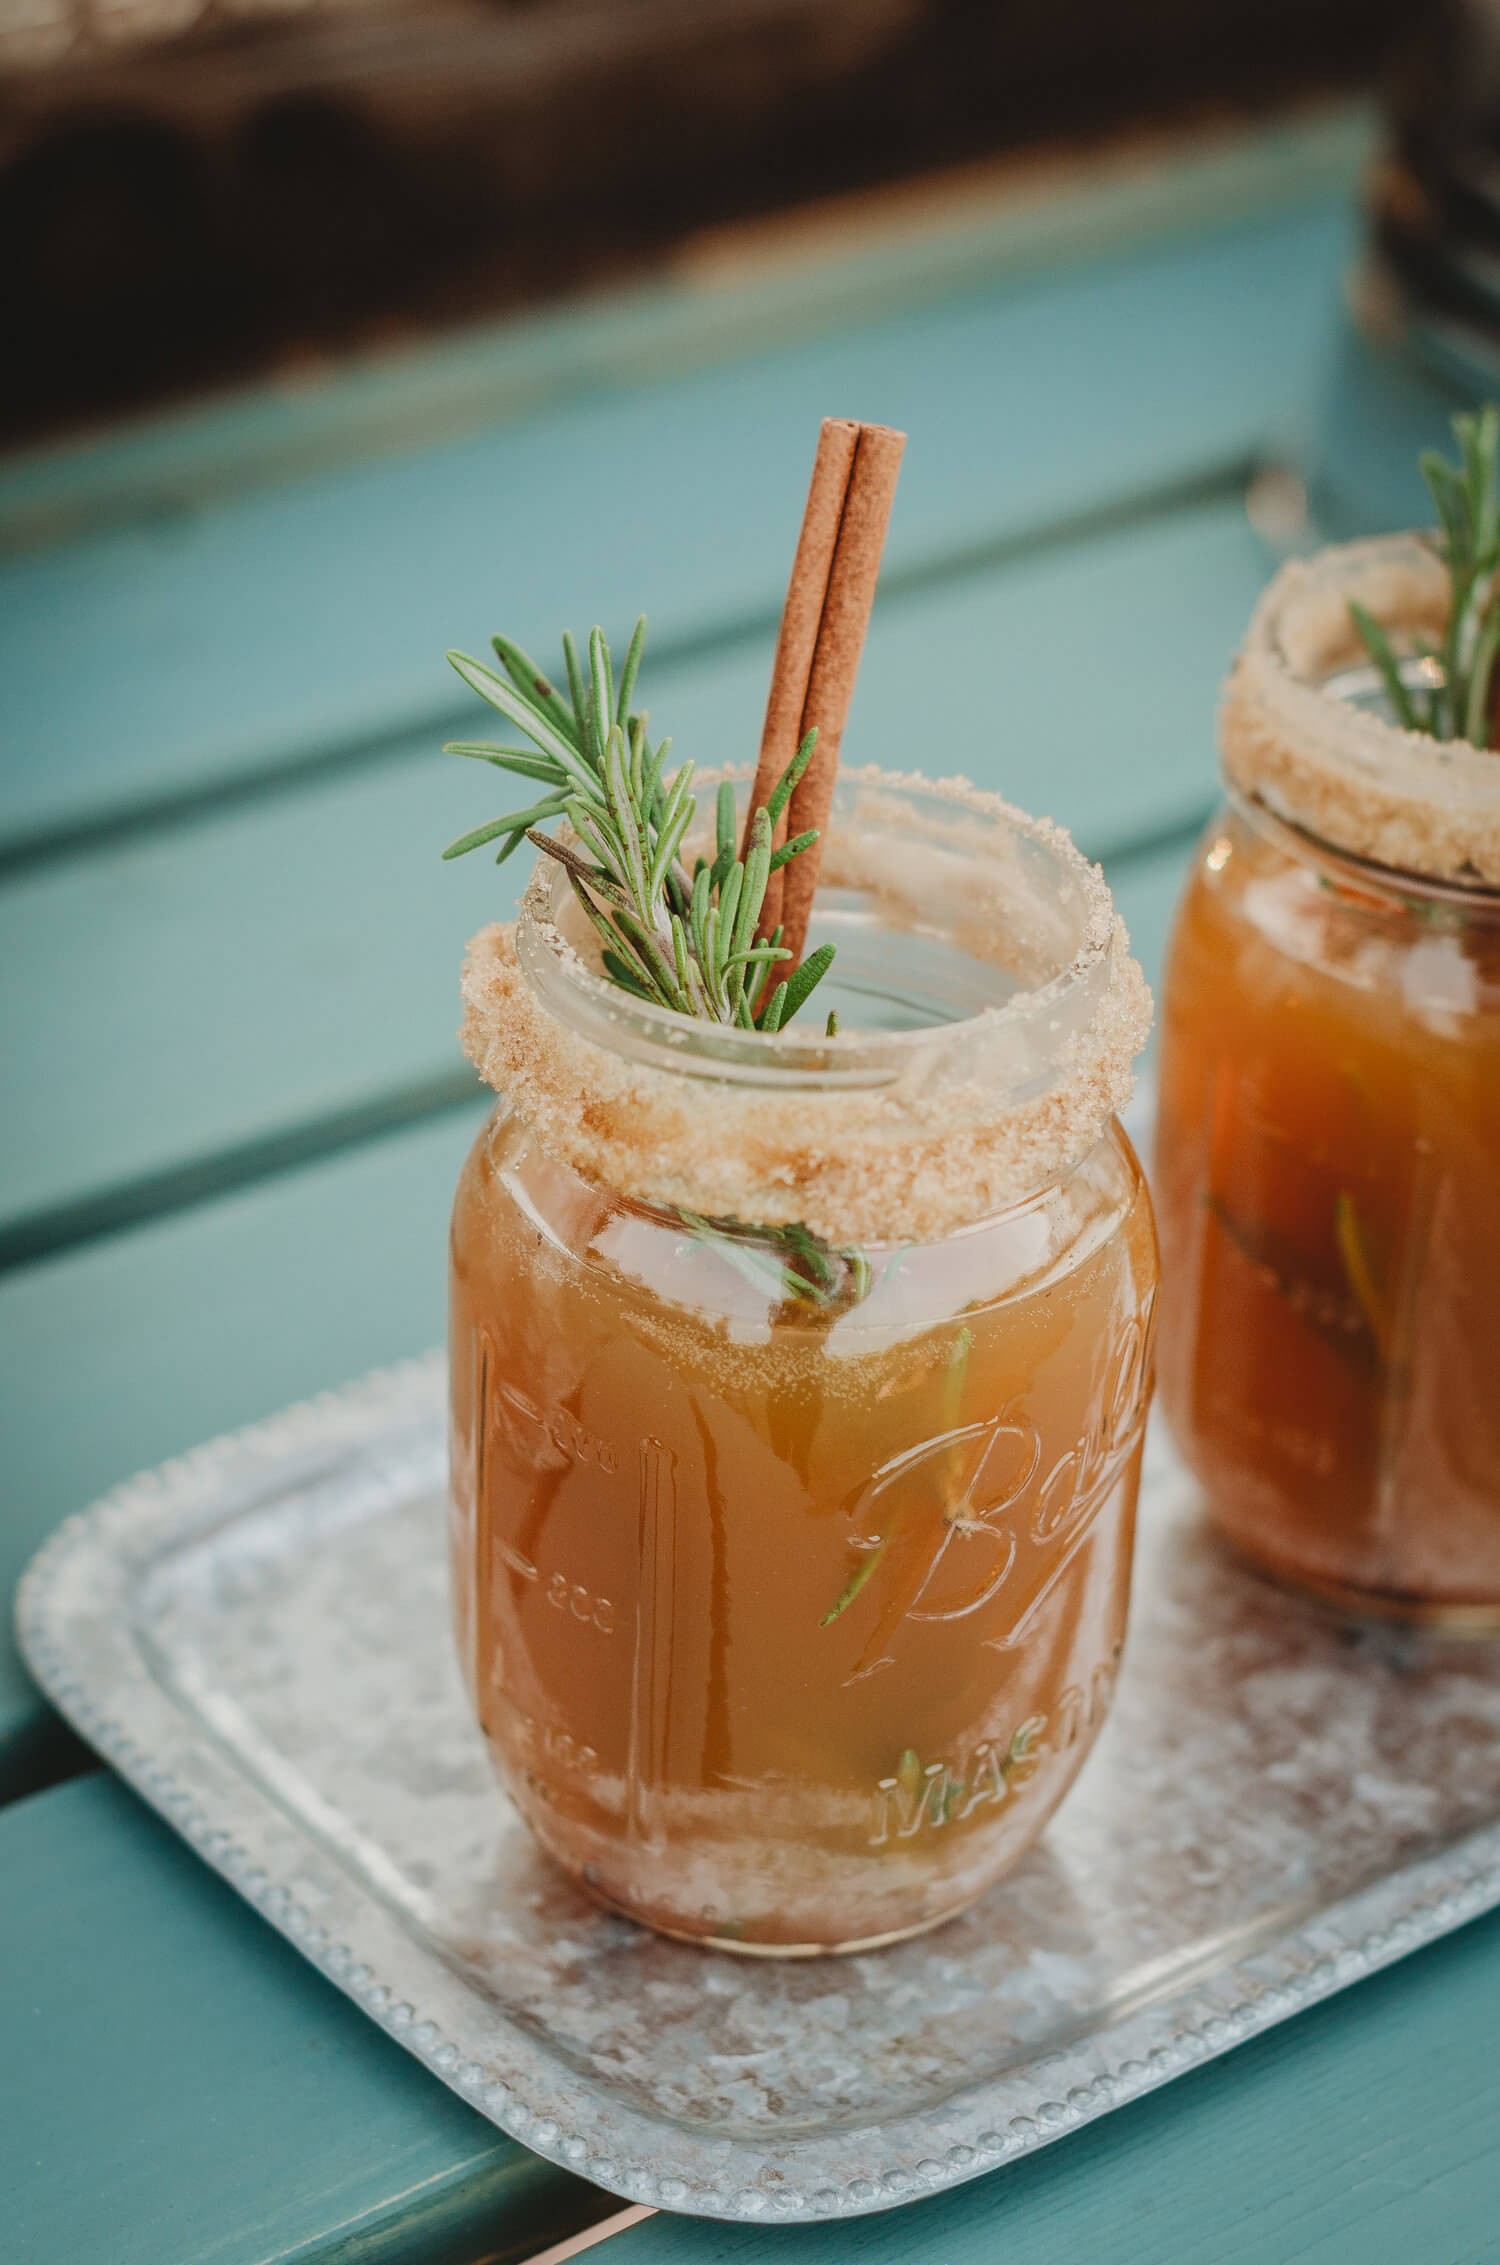 The Best Way to Serve Fall Drinks: Coat the mason jar rim with cinnamon and sugar and add a cinnamon stick for the drink stirrer. Click to see even more details of this fall bridal shower by party stylist Mint Event Design. #bridalshowers #bridalshowerideas #rusticwedding #rusticbridalshower #bridalshowerdecor #farmwedding #drinks #drinkstation #cocktail